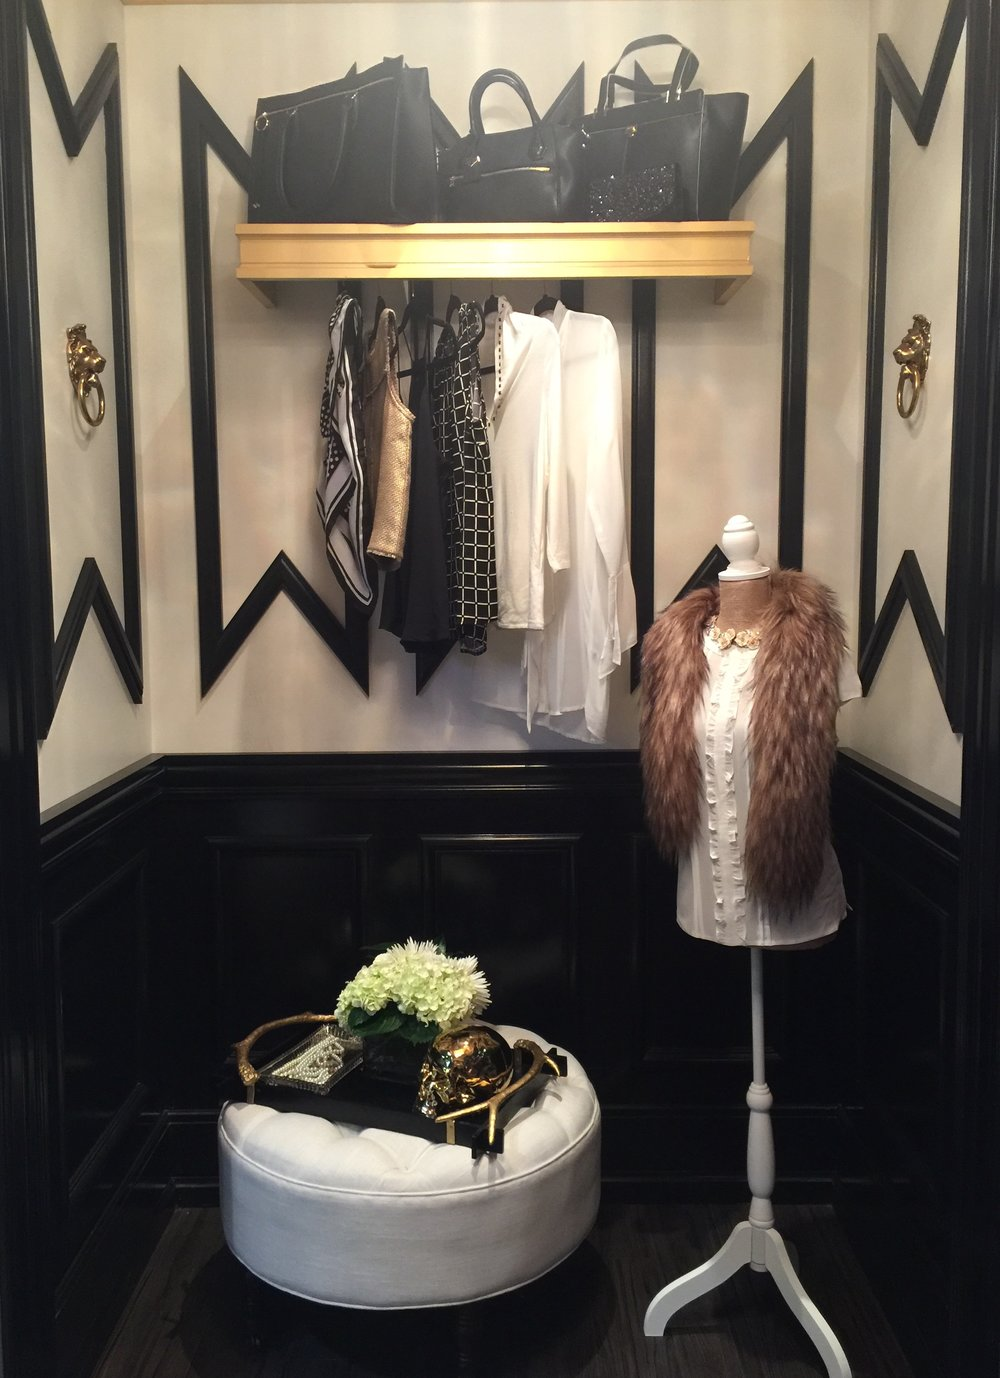 Loving the high contrast of black and cream on the walls here. No need for additional wall decor when your architectural elements do a fine job of adding interest and detail. #mouldings #closet #dressingroom